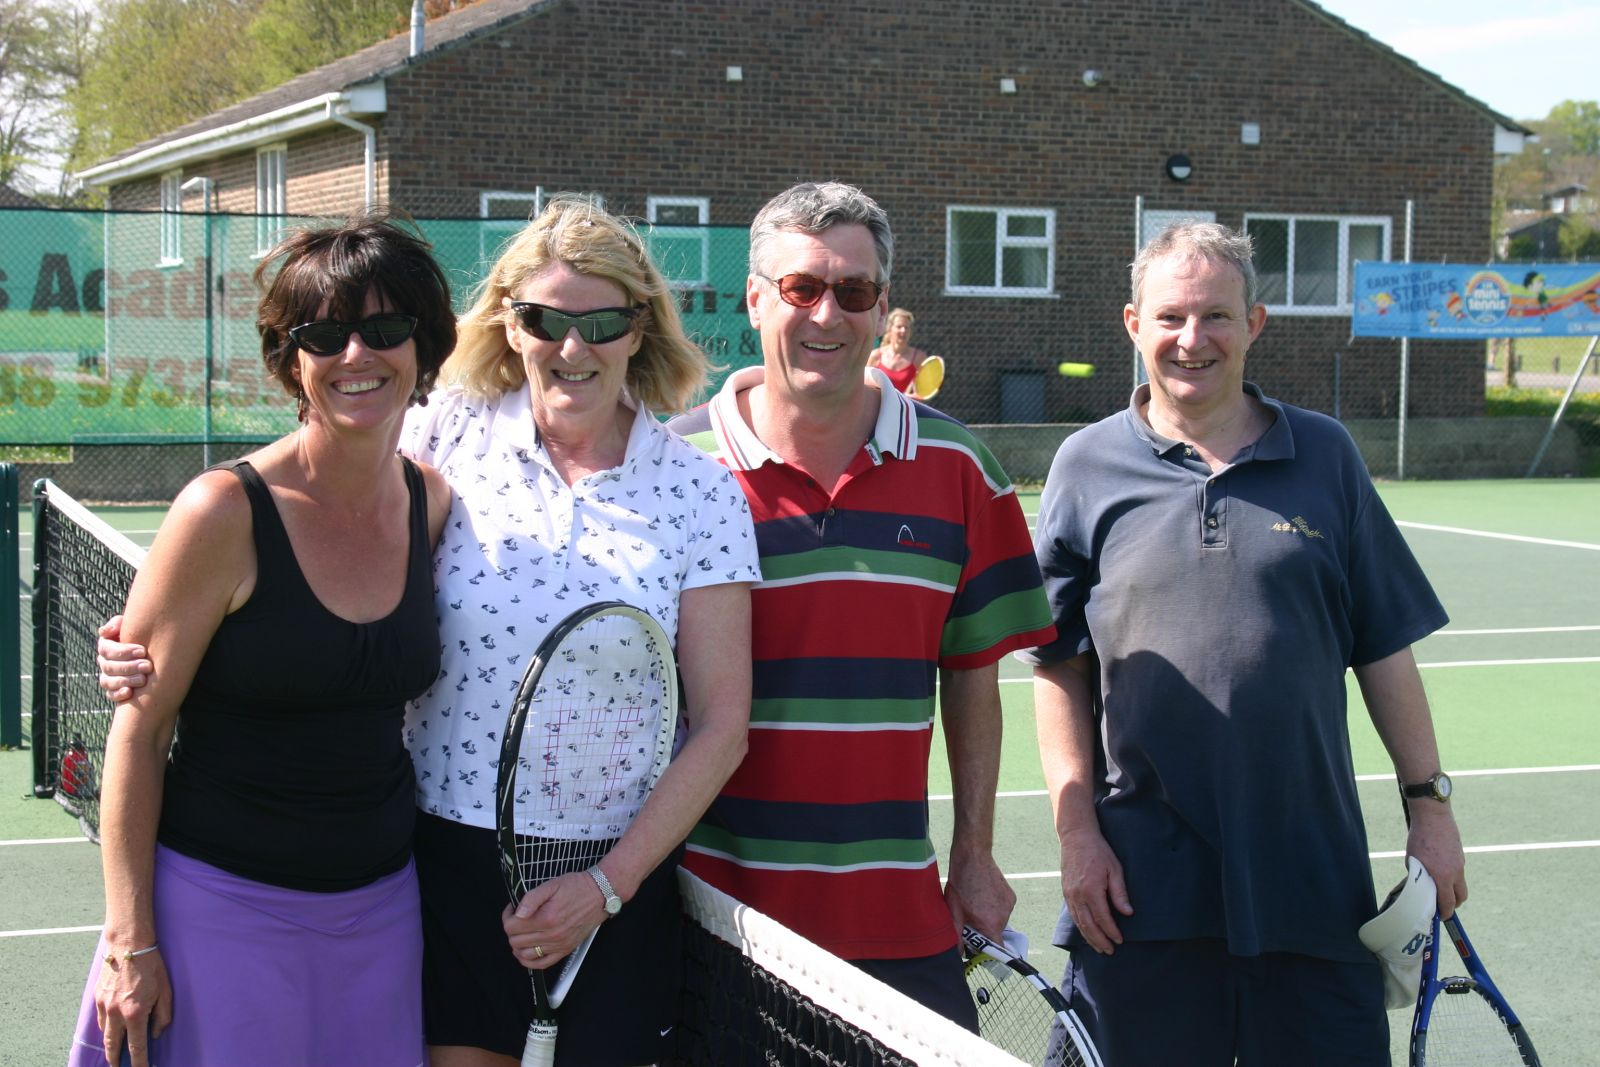 May 2013 Semi finalists - Elspeth Gracie & Ros Clark v Chris Porter & Mike Williams